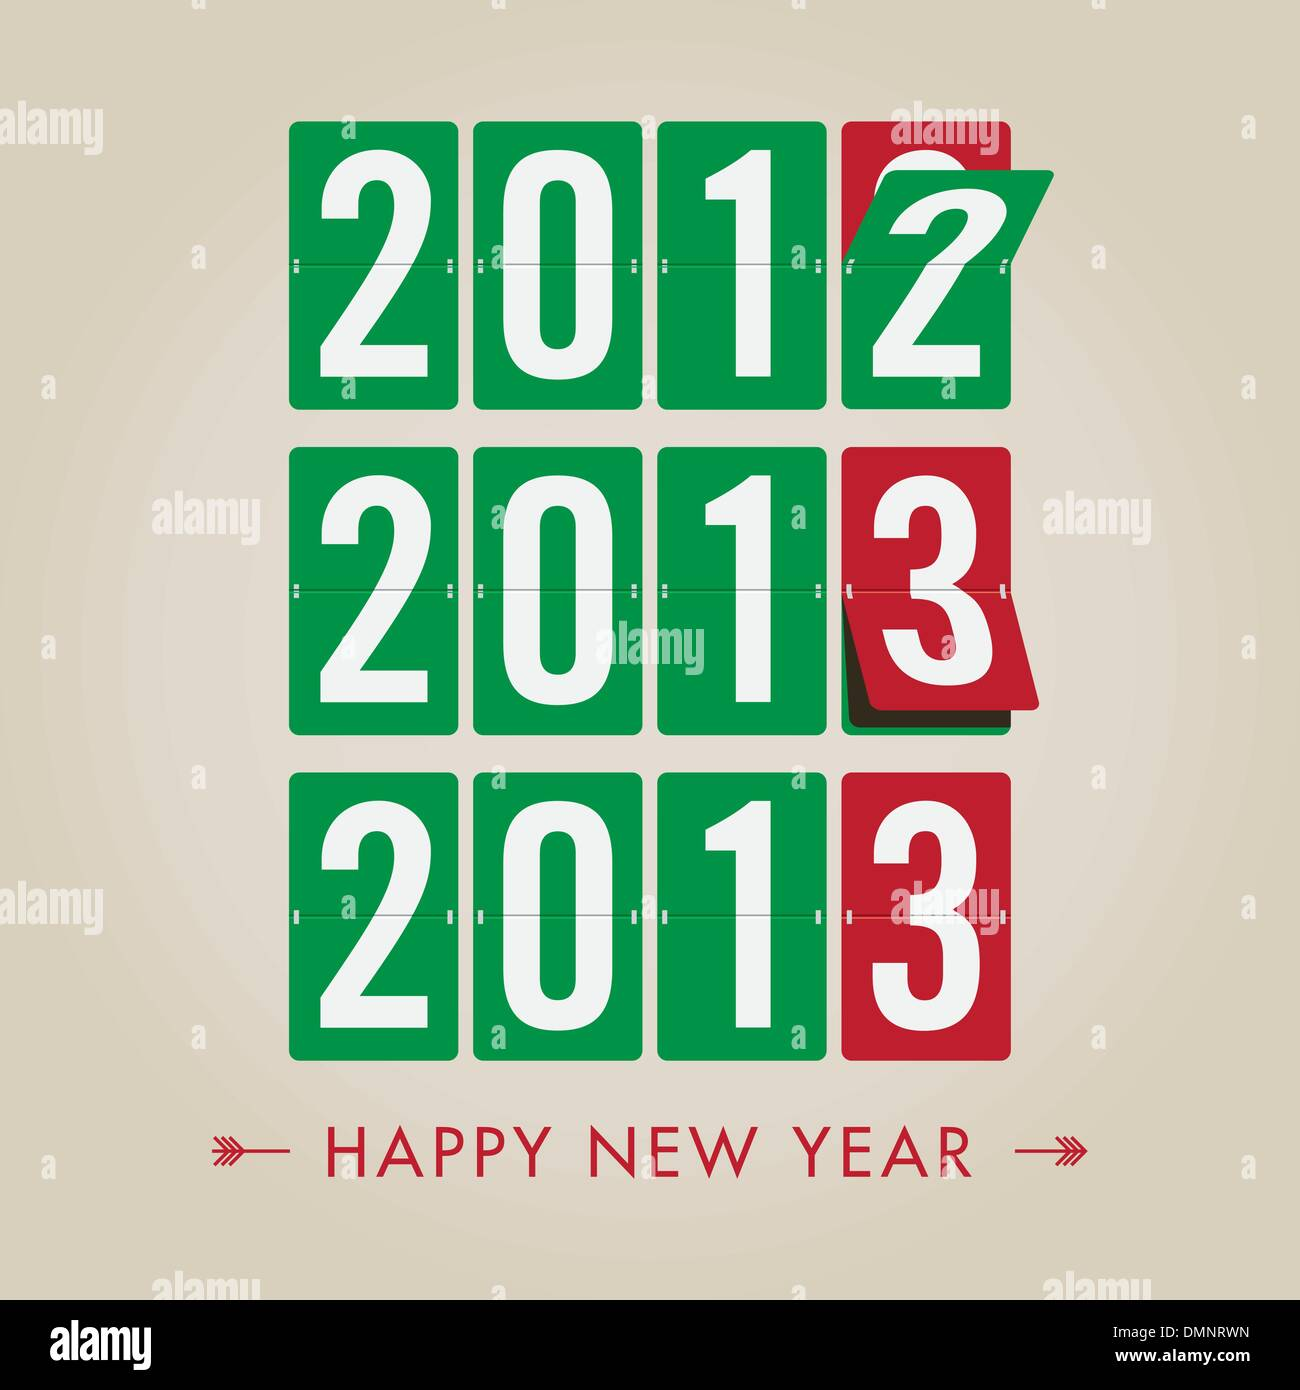 Mechanical timetable numbers count, happy new year's eve 2013 - Stock Image